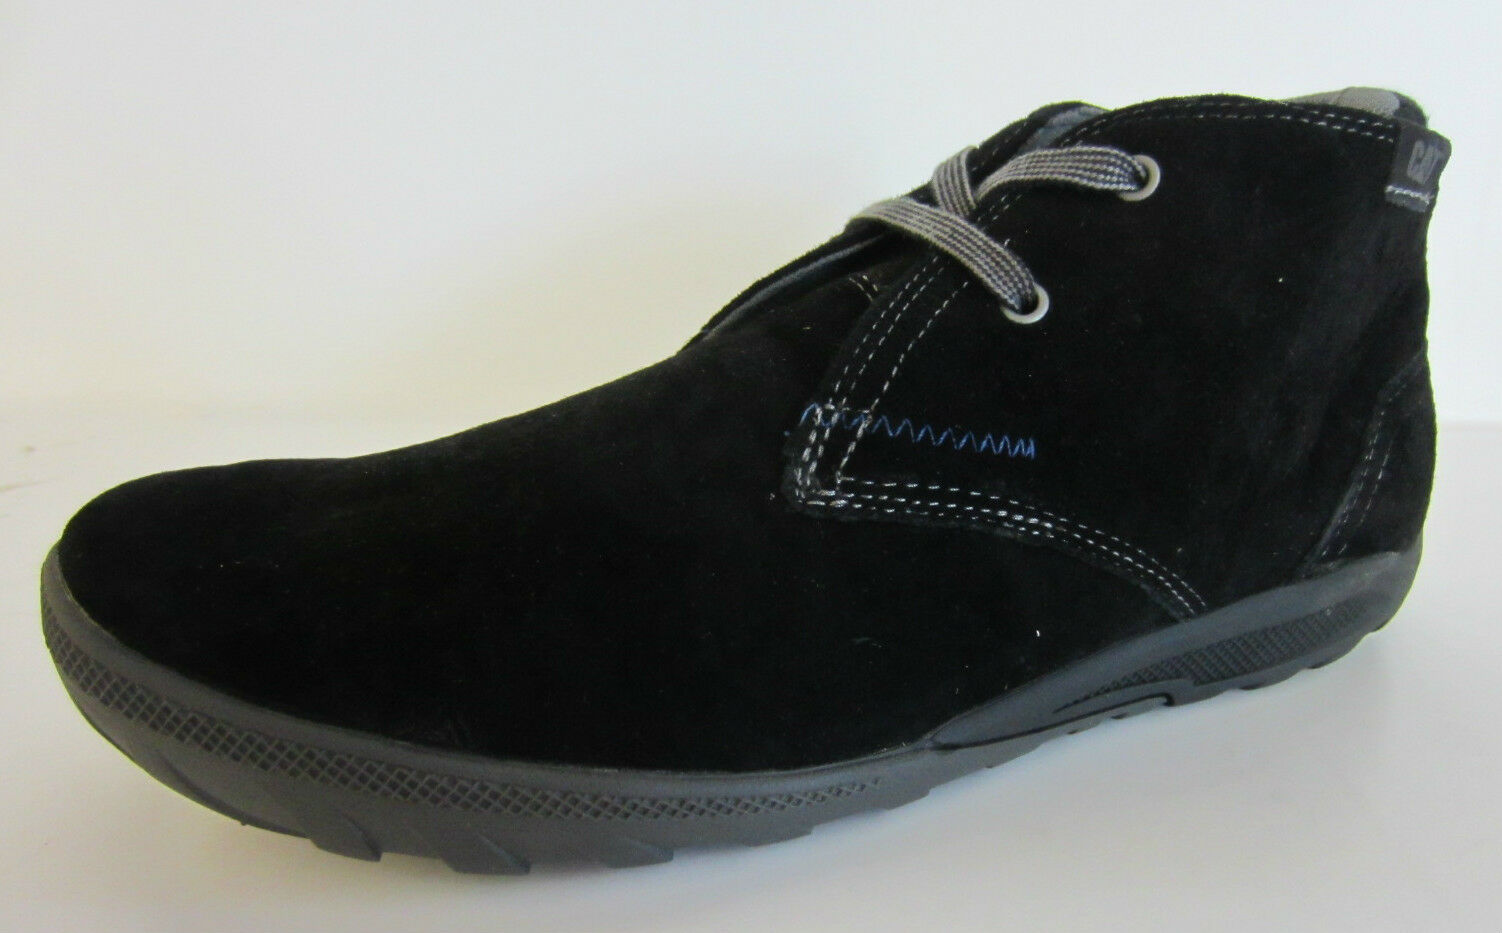 Cat P714138 CRUMP 7-11 Mid Botines Hombre Negro GB Tallas 7-11 CRUMP (Mr. ) 3575a3